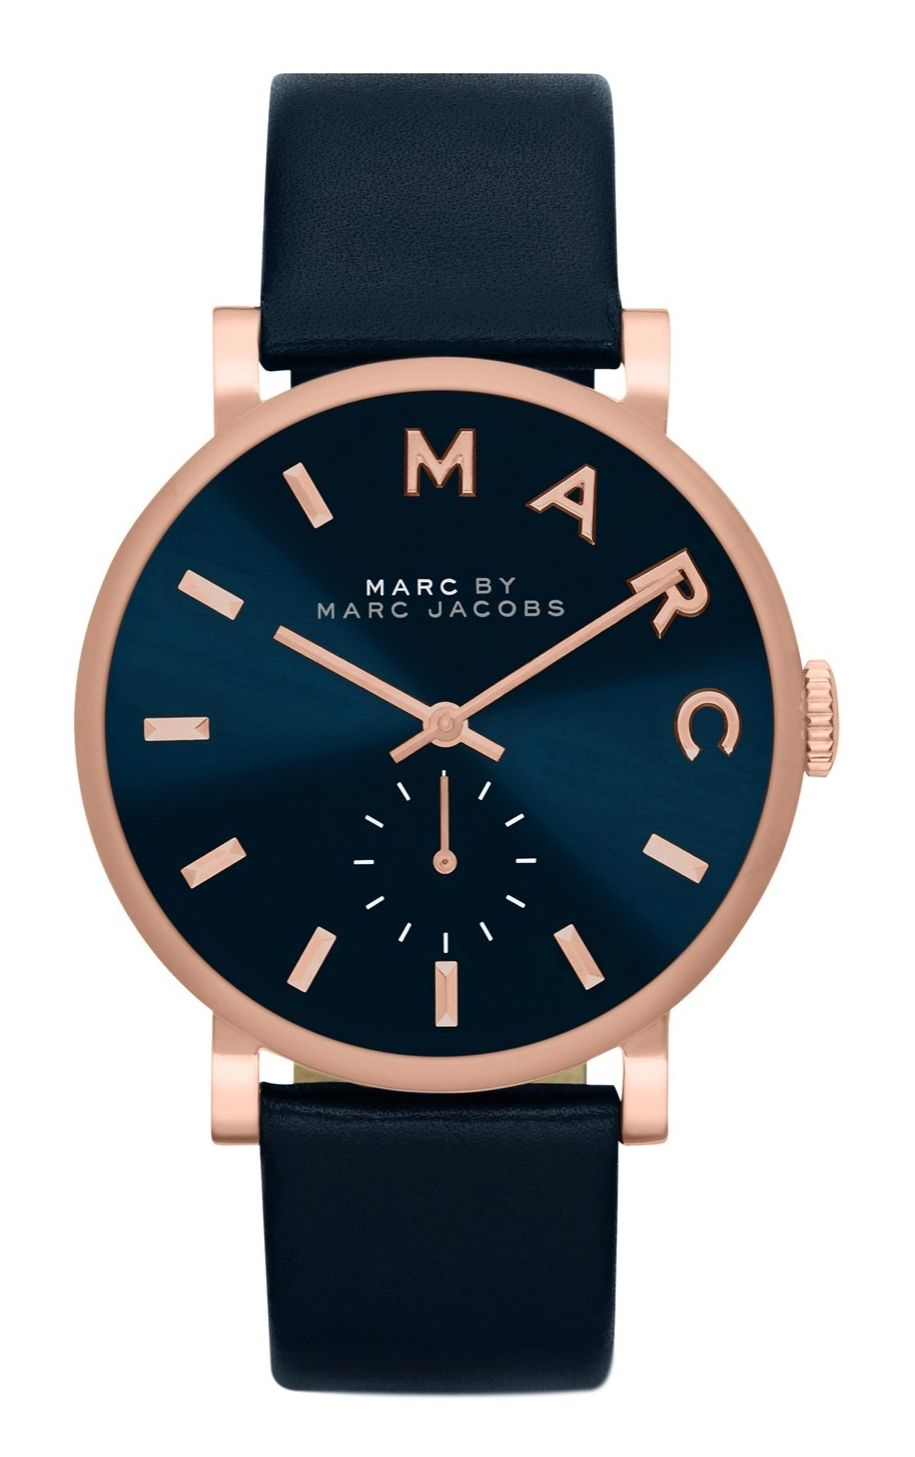 3c28e1ddb49 The understated elegance of this polished navy and rose gold Marc Jacobs  watch makes it perfect for everyday wear.